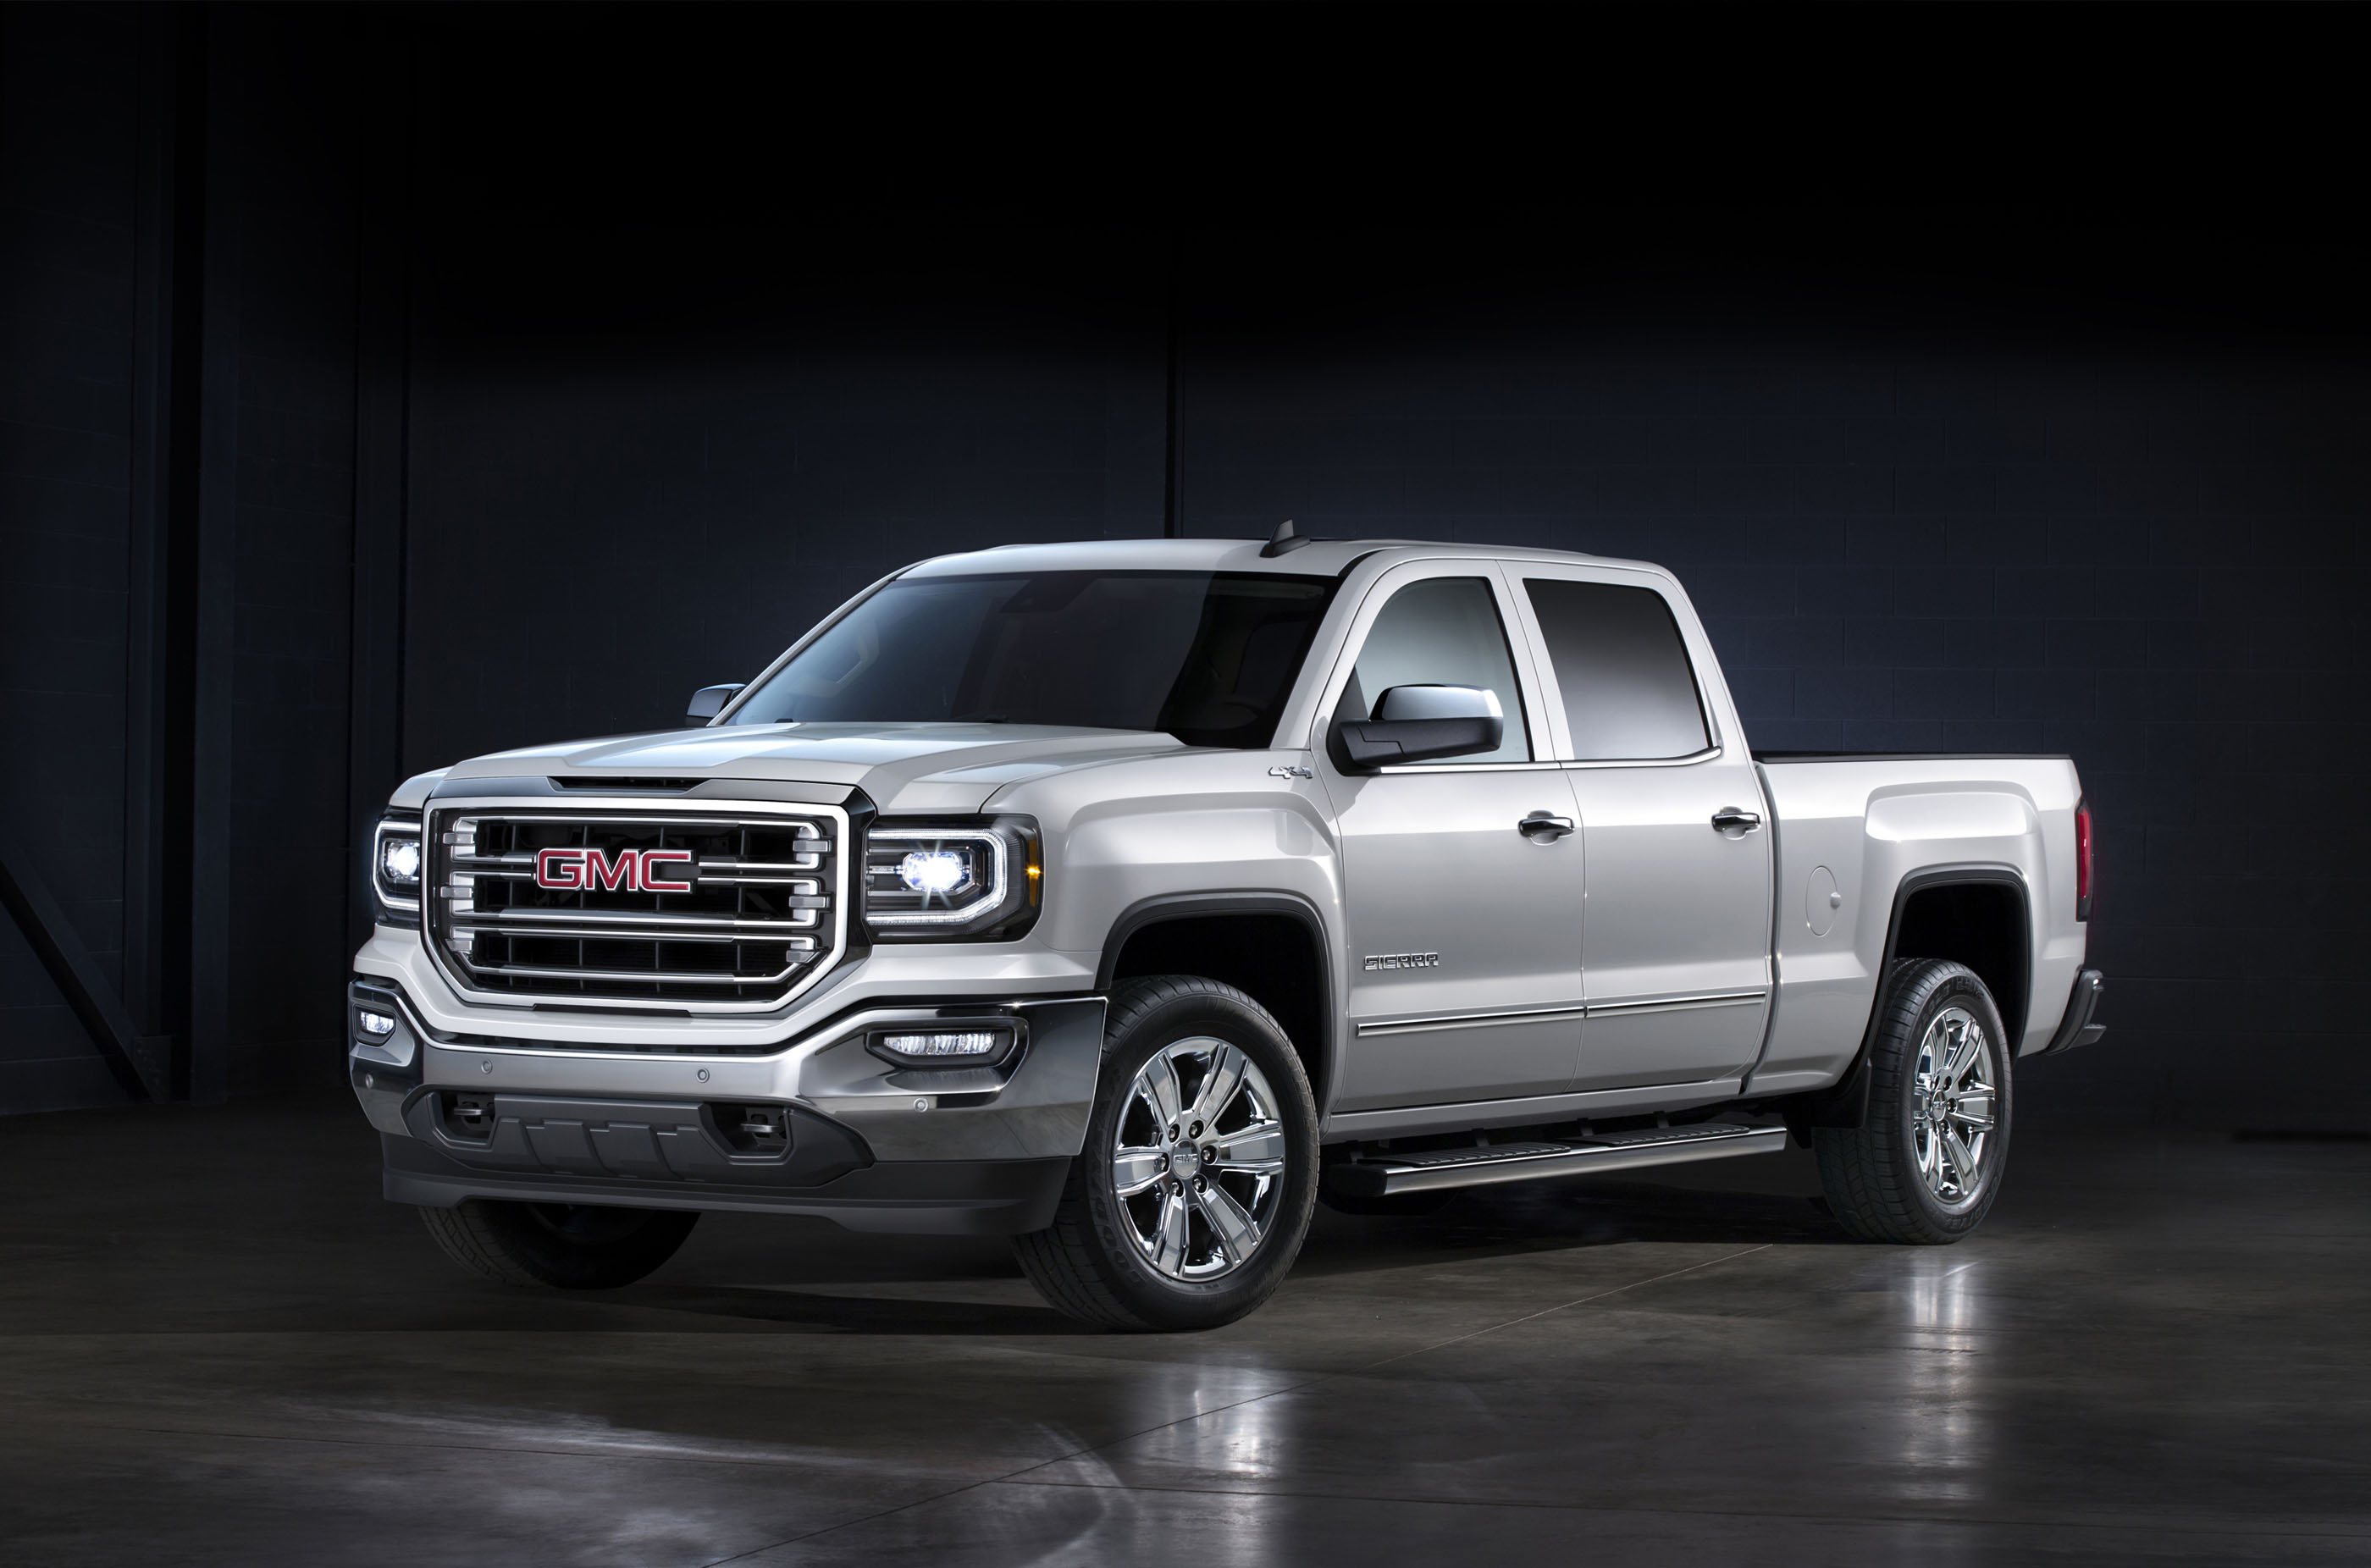 middle reviews review gmc east sierra news motoring car